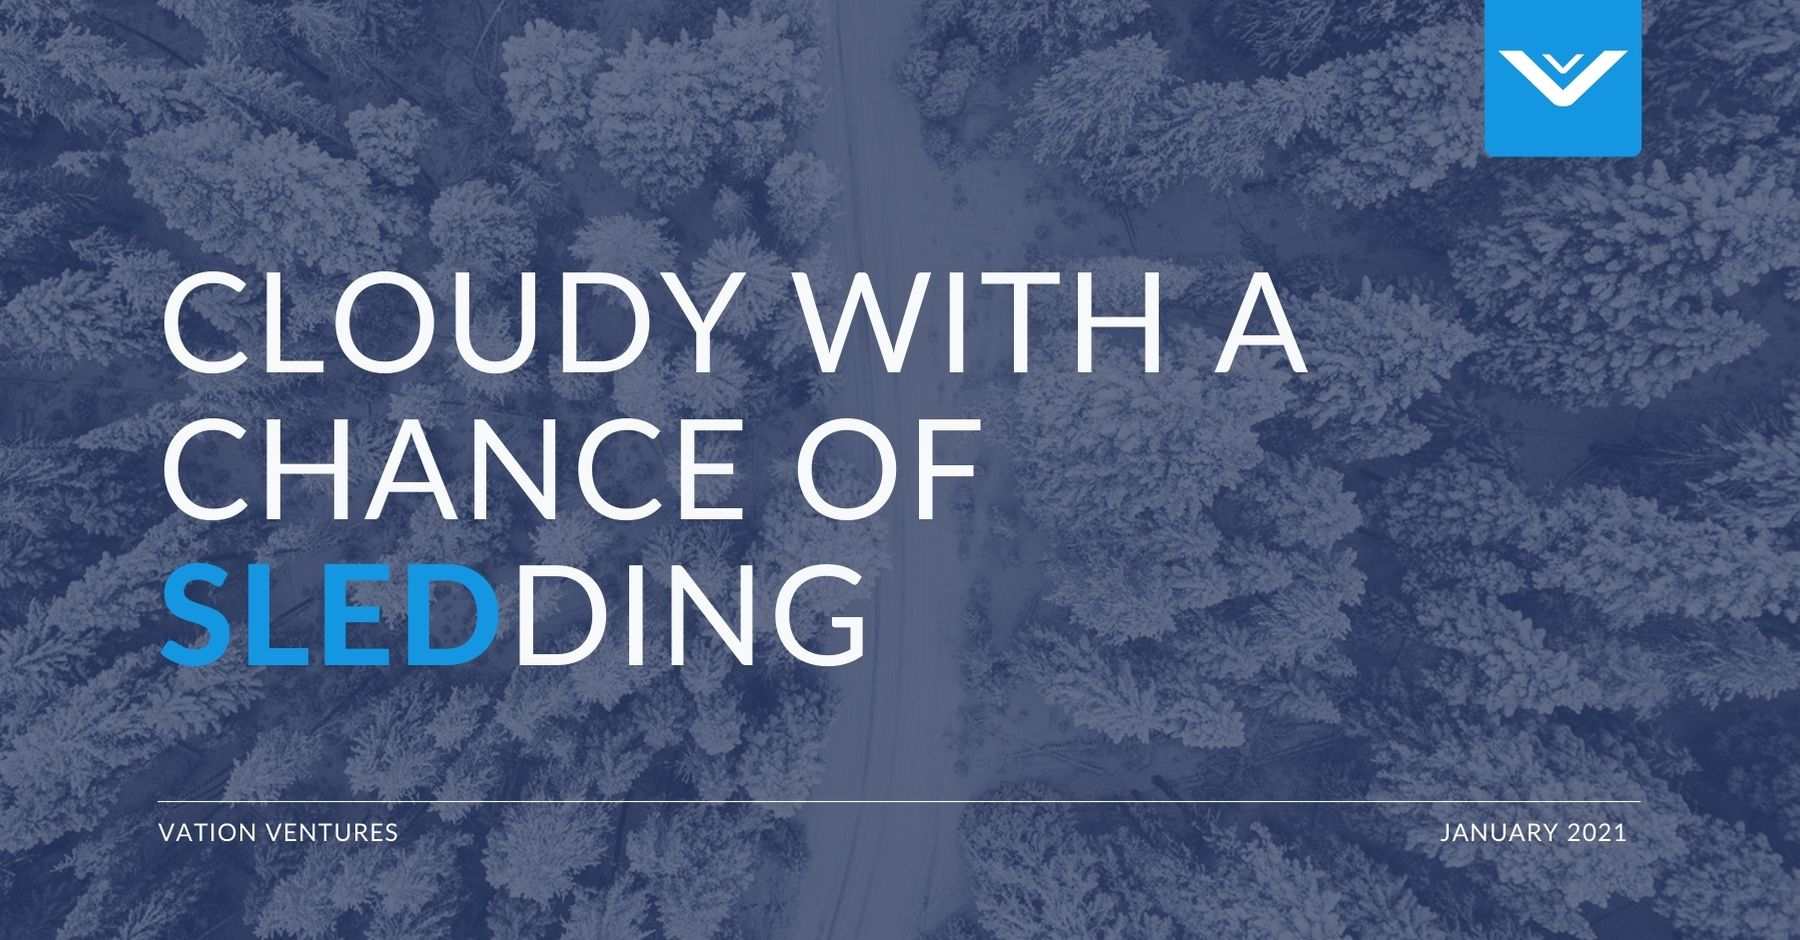 2021: Cloudy with a Chance of SLEDding